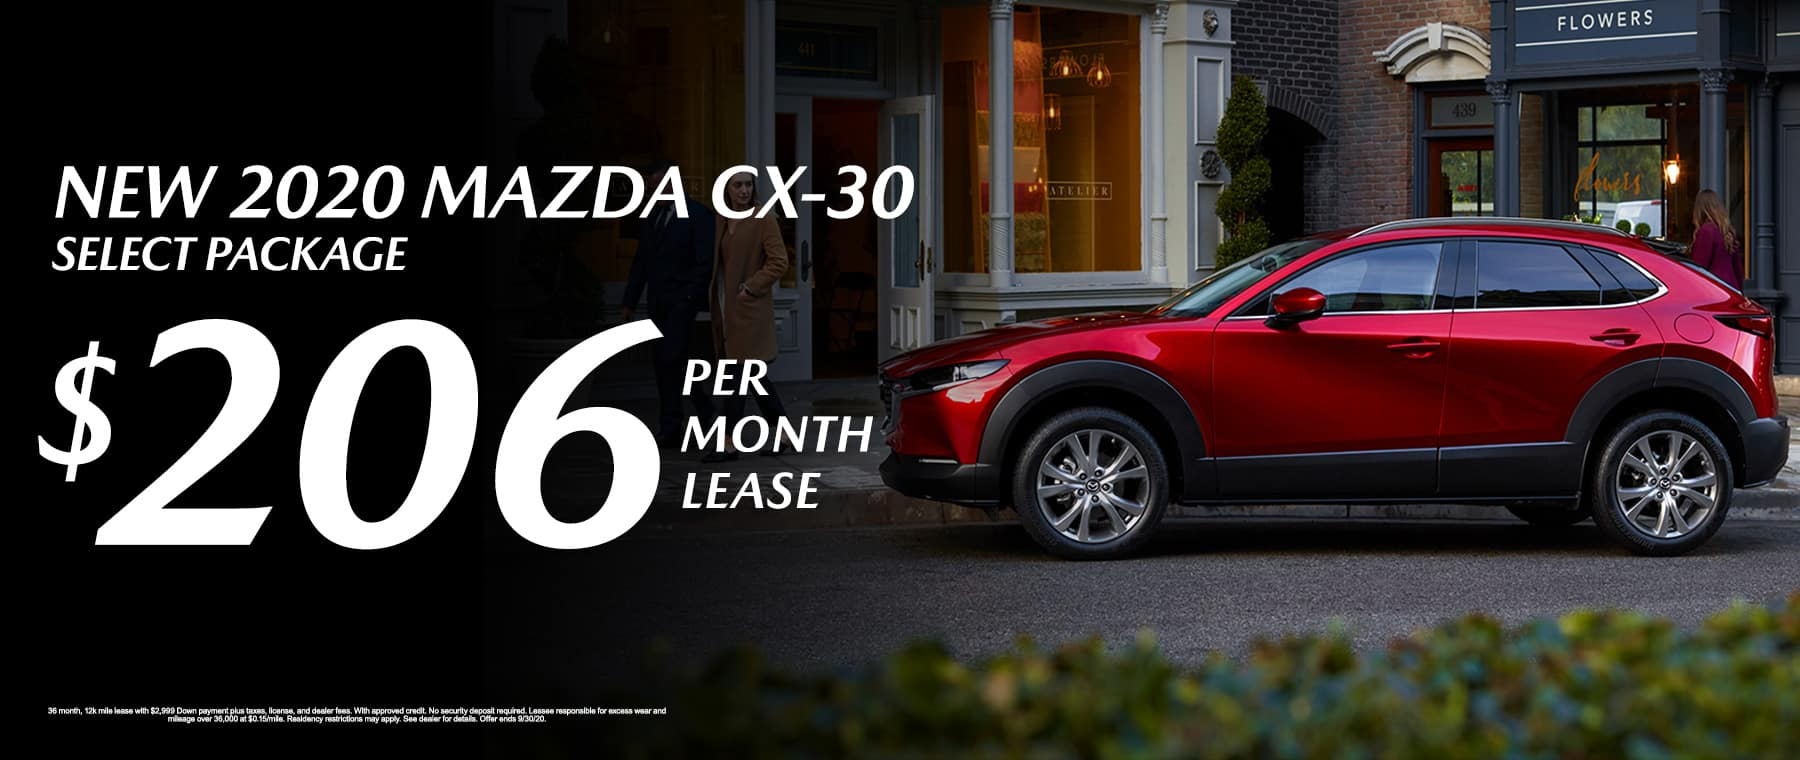 Lease a New 2020 Mazda CX-30 Select Package for $206 per month at Mazda of Fort Walton Beach!